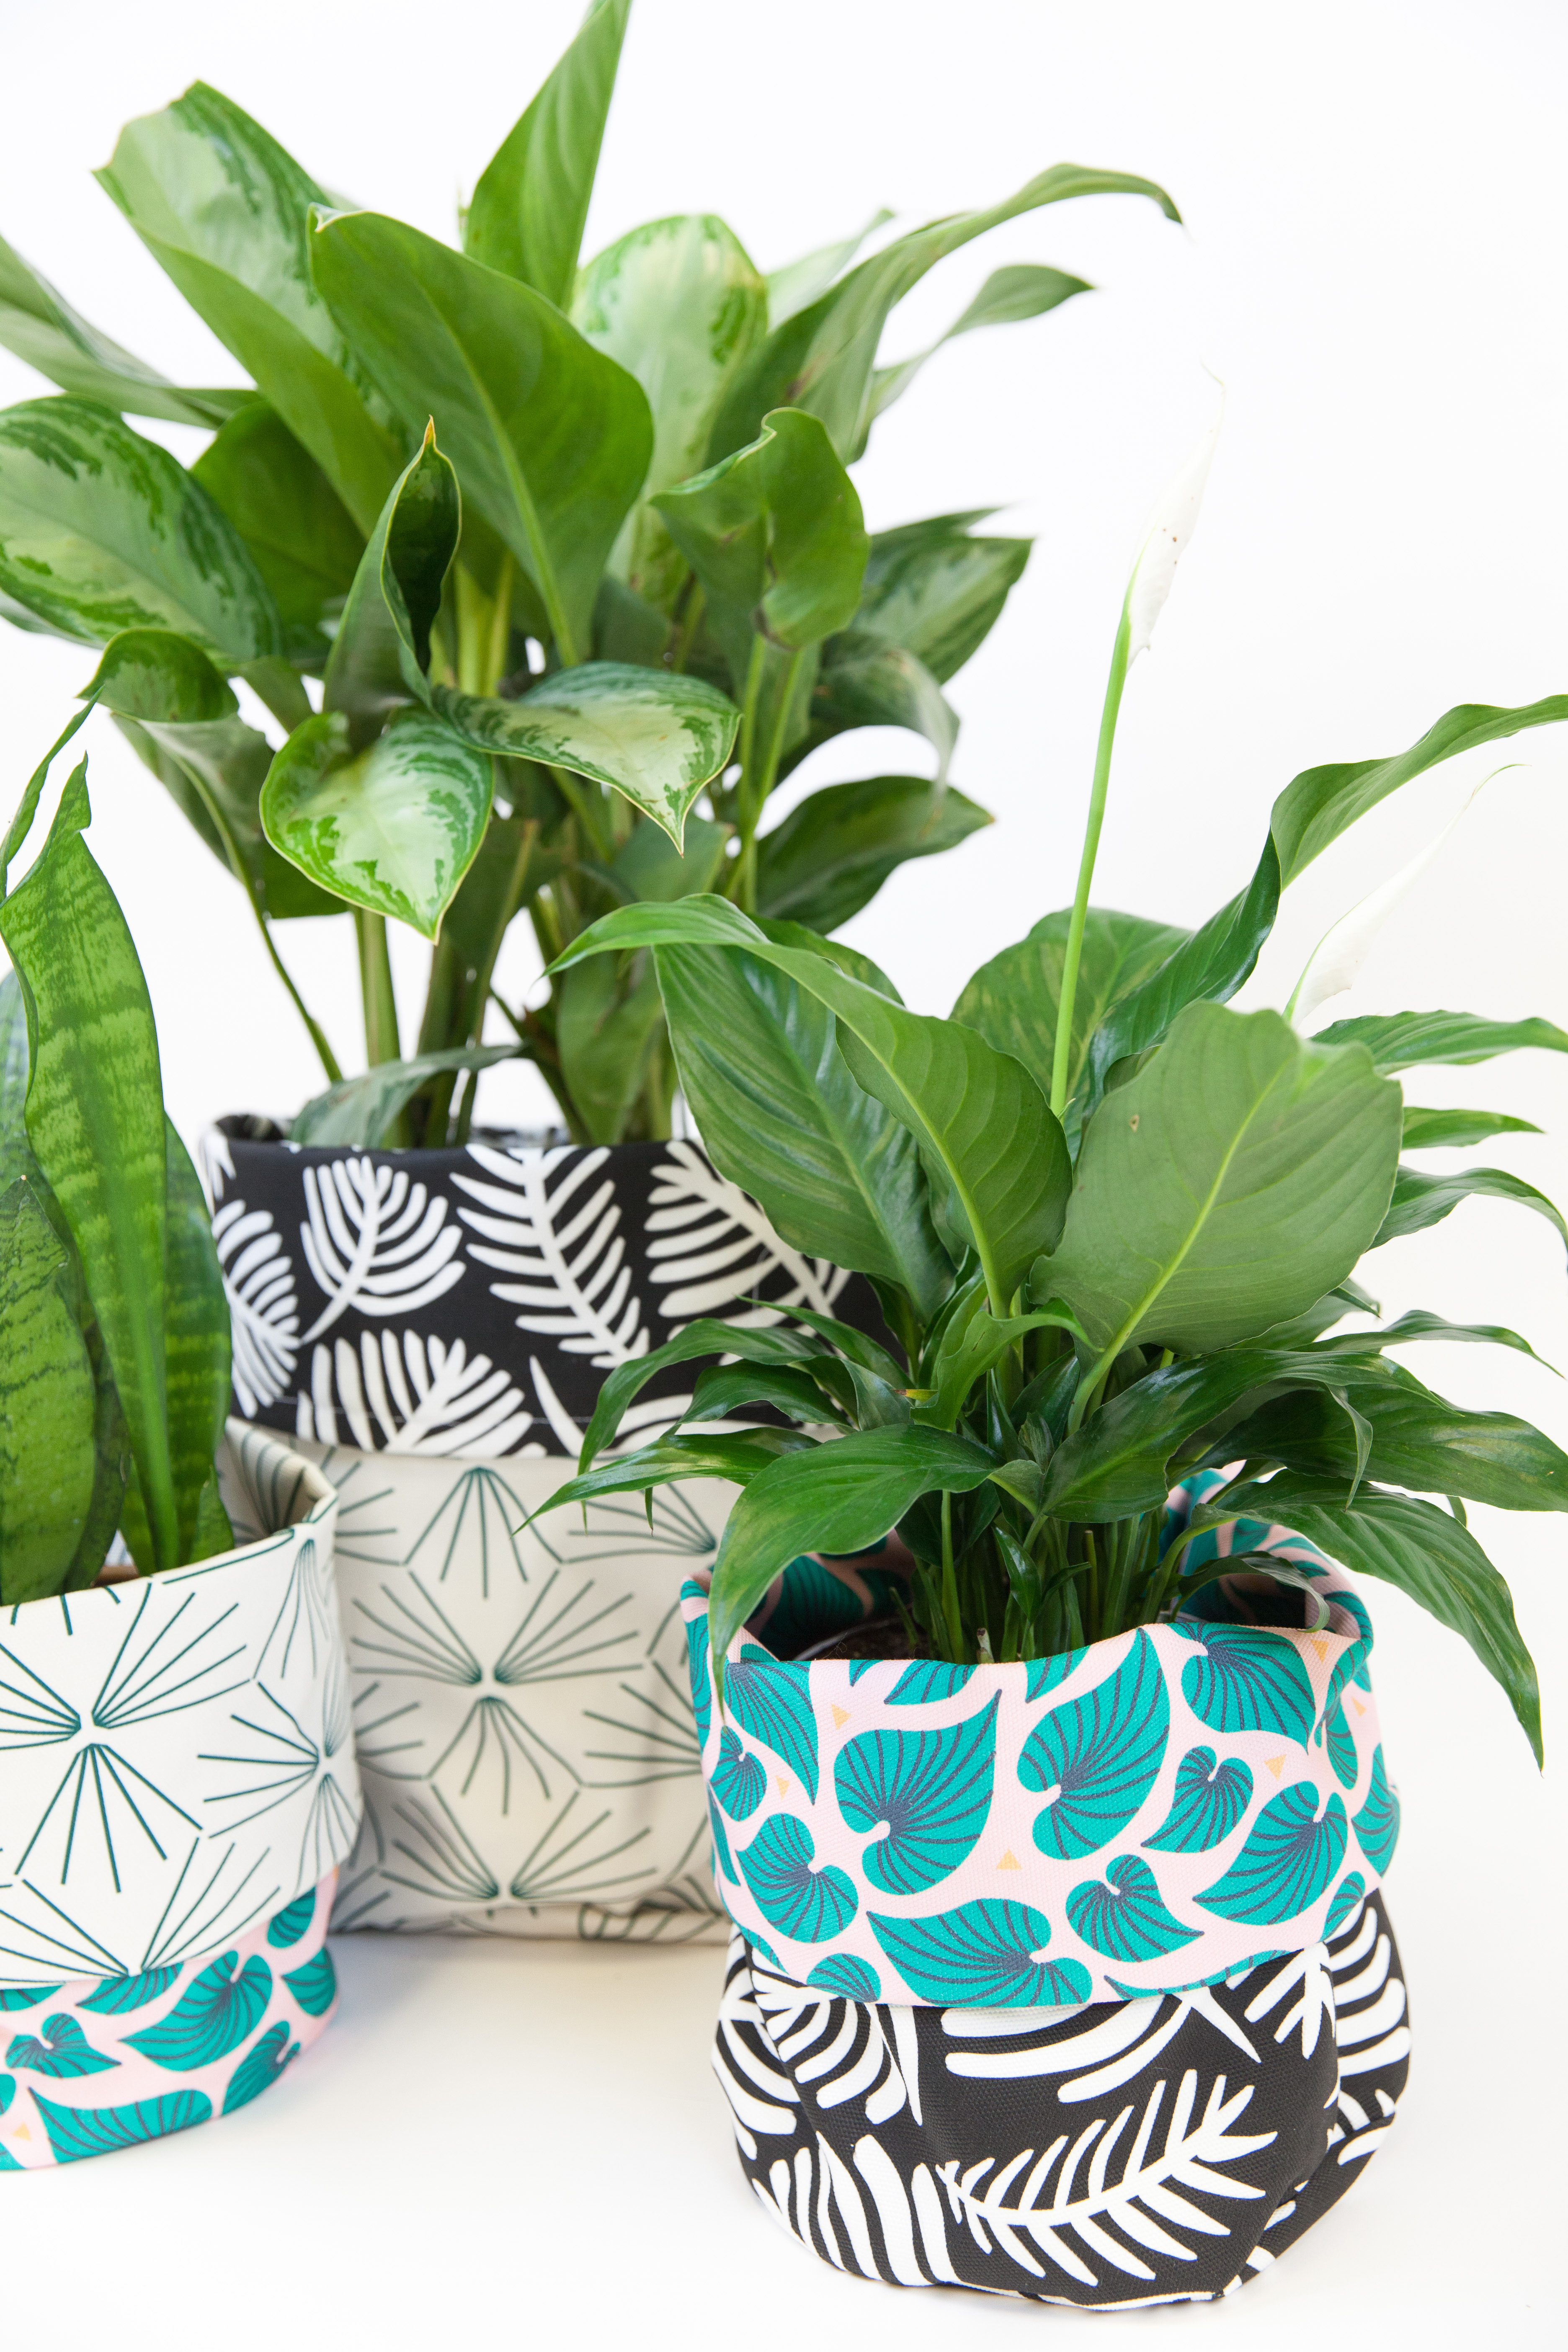 Brighten up Your Houseplants with DIY Fabric Planters | Spoonflower Blog